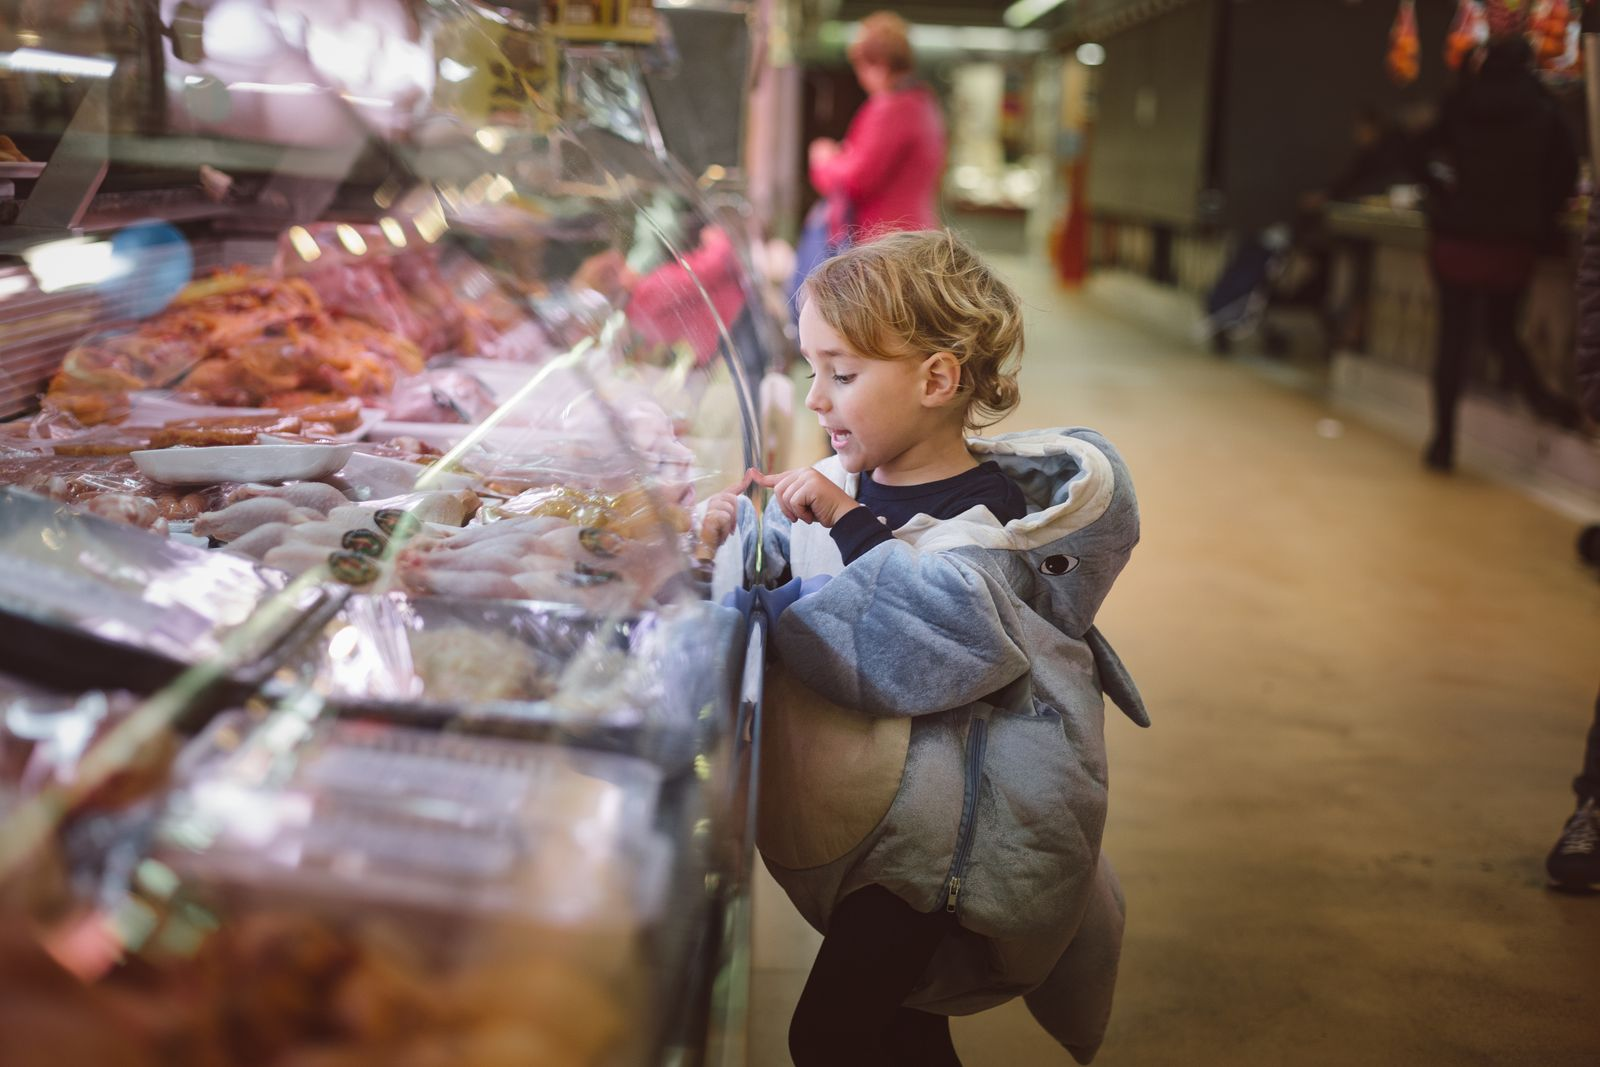 Boy dressed as a shark looking at the meat in the market